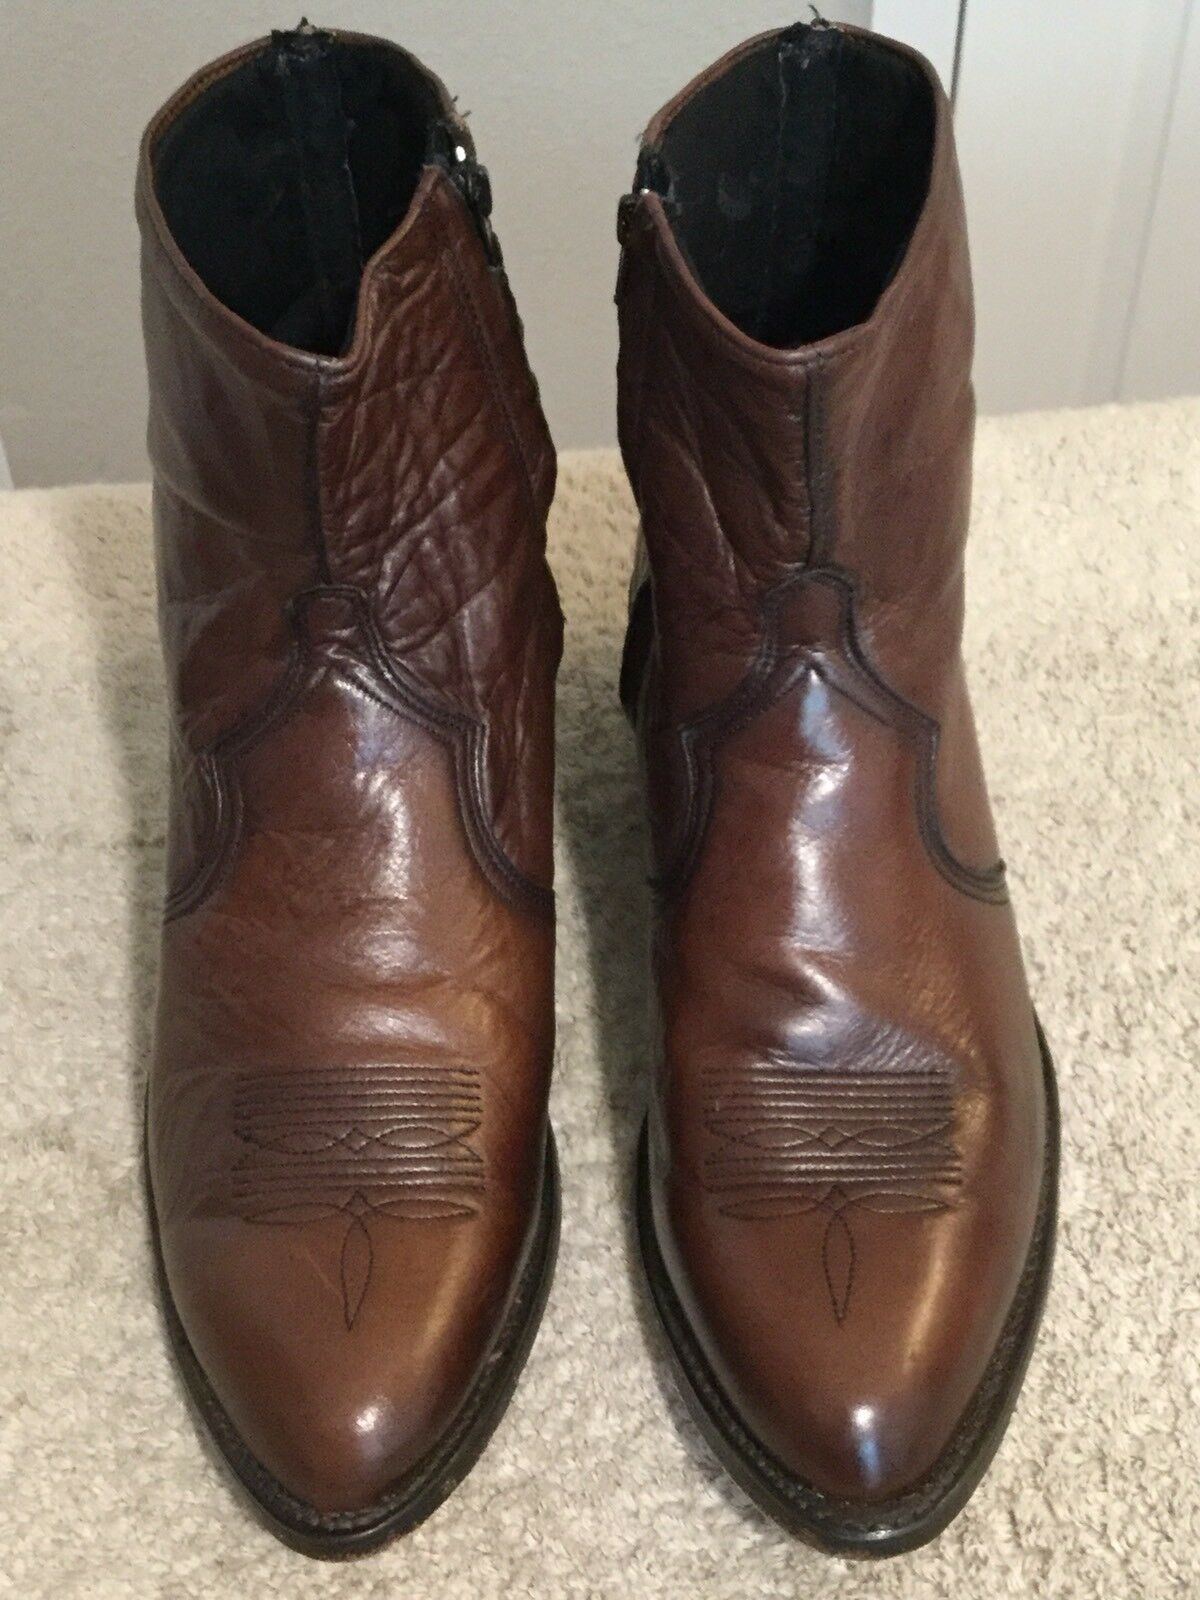 Abilene  6034 Men's Brown Soft Leather Boots. Size 9.5. Excellent Condition.